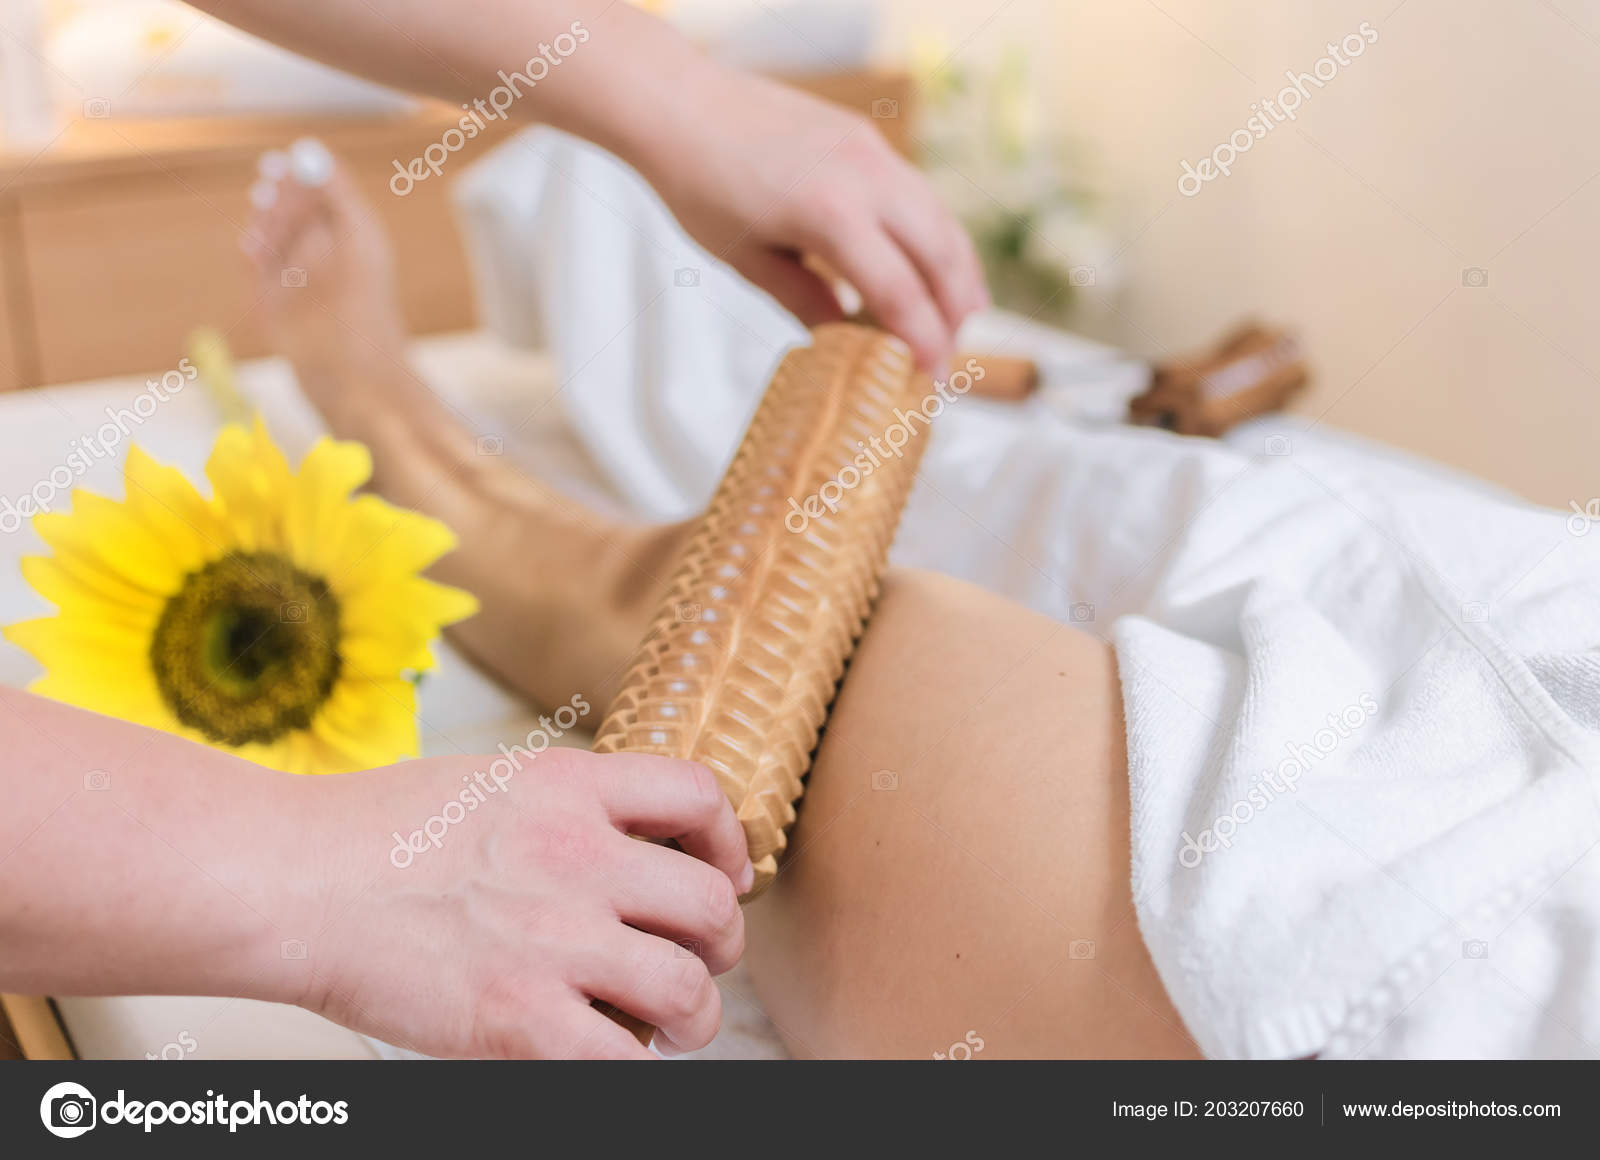 sunflowers massage gratis chatt